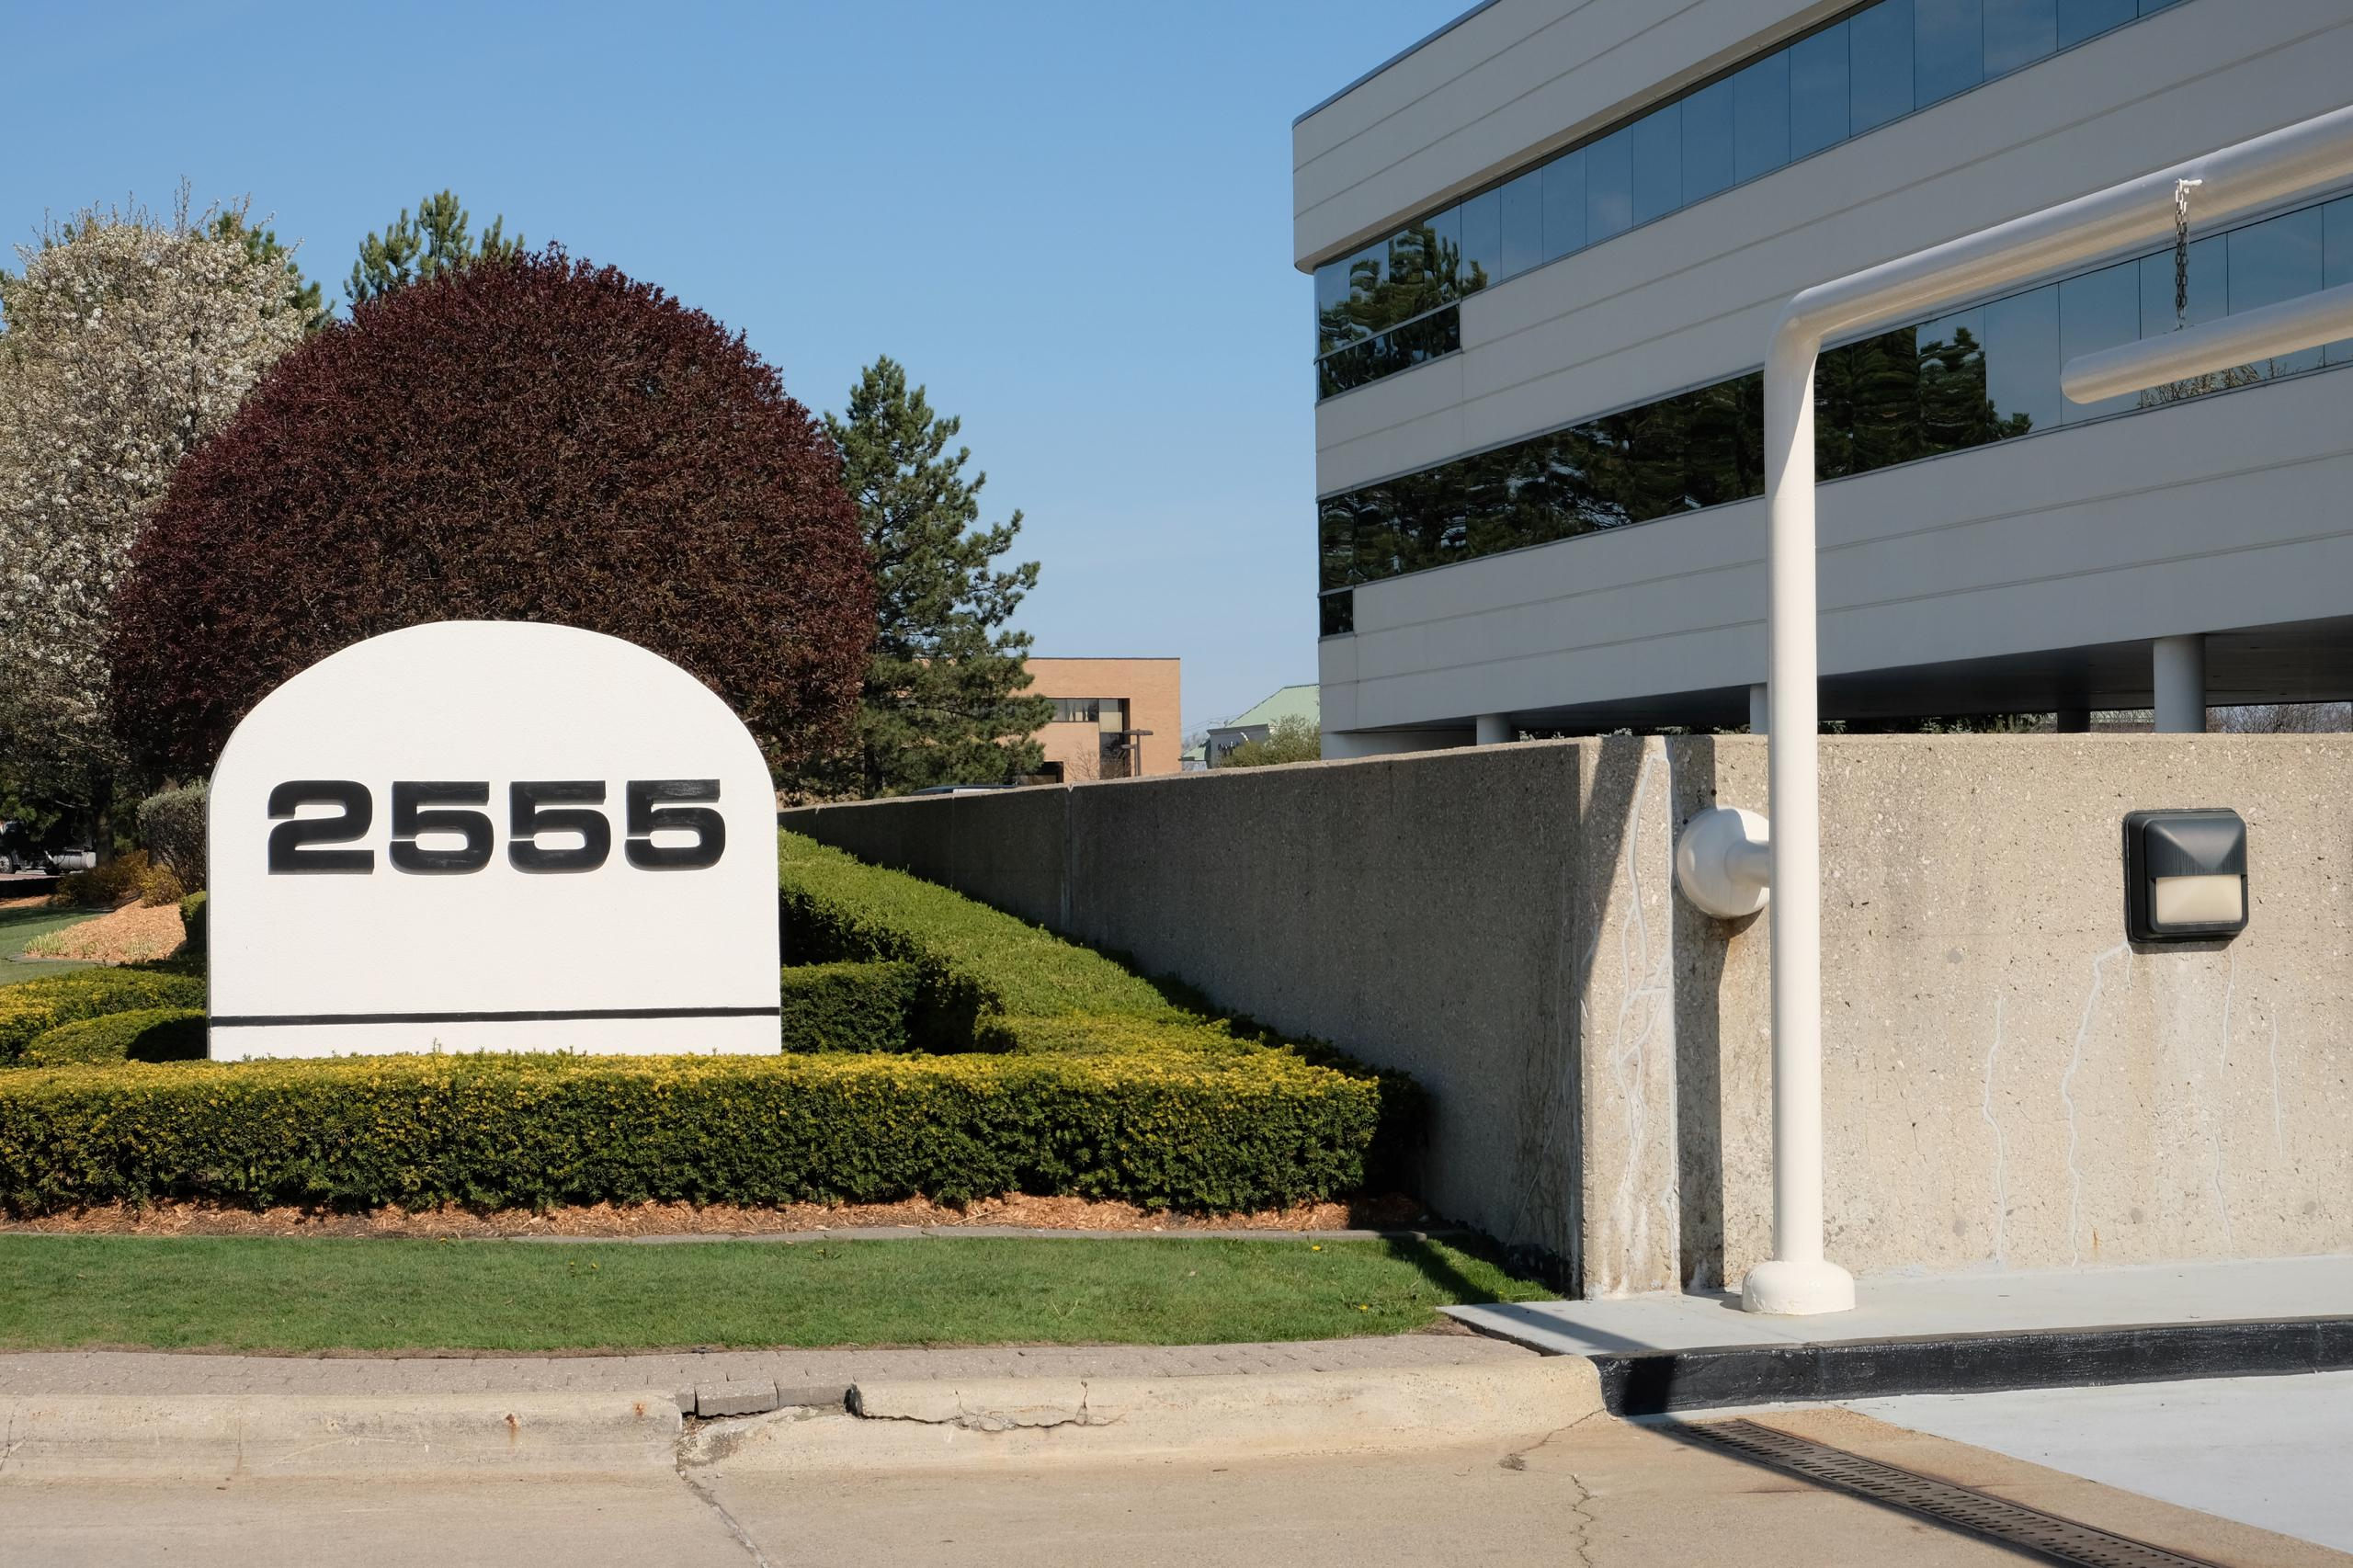 Entrance to Penske Automotive Group's headquarters in Bloomfield Hills, Michigan.